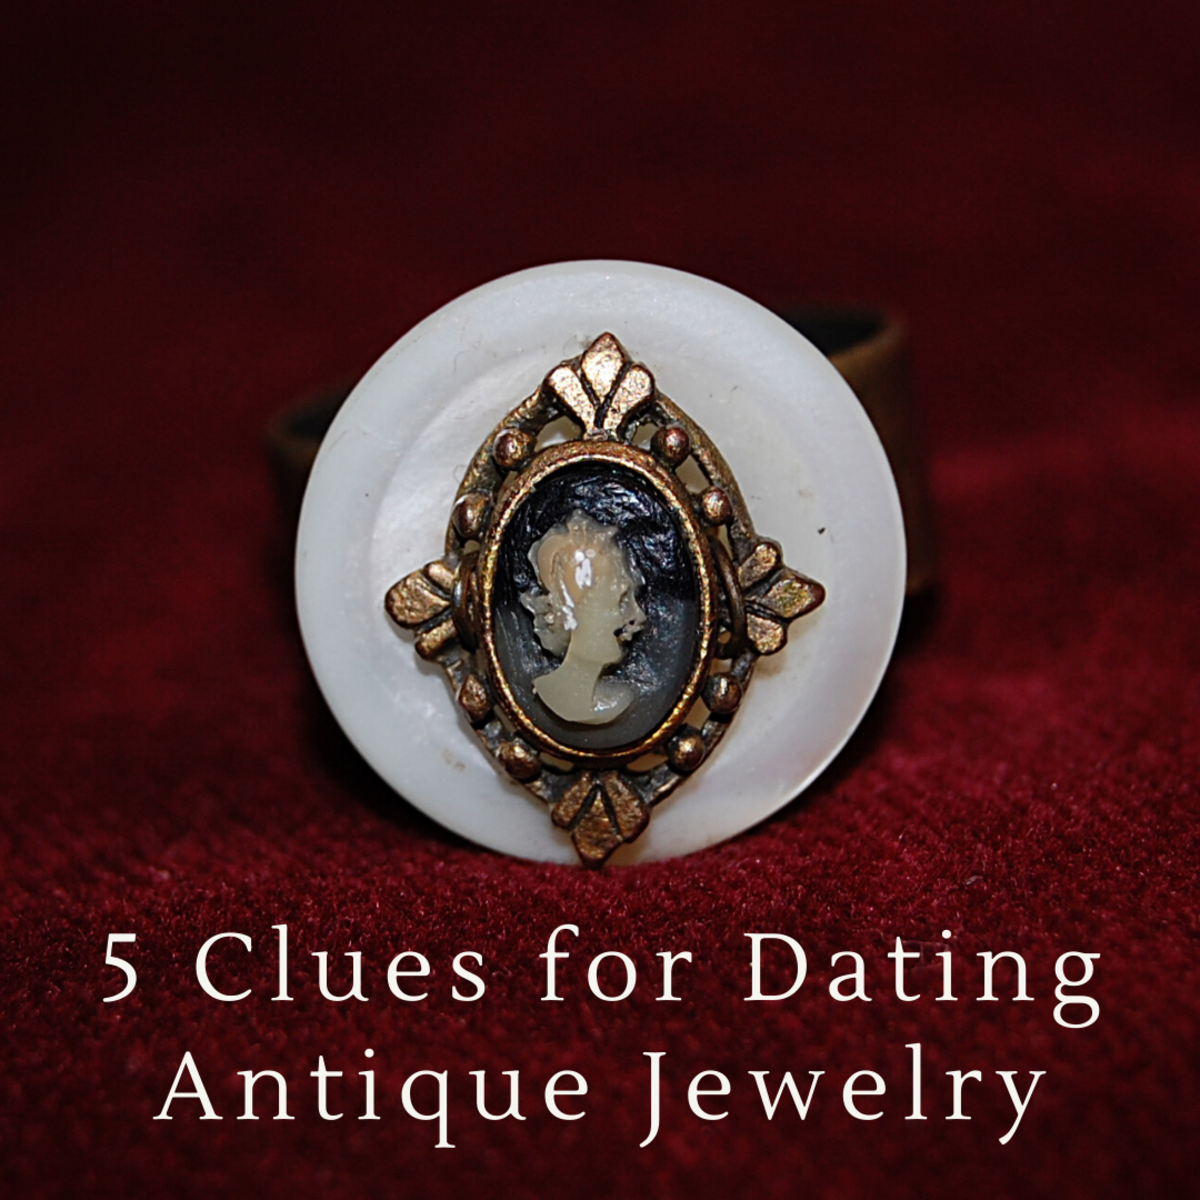 This article will offer some tips on how to analyze and date antique jewelry.